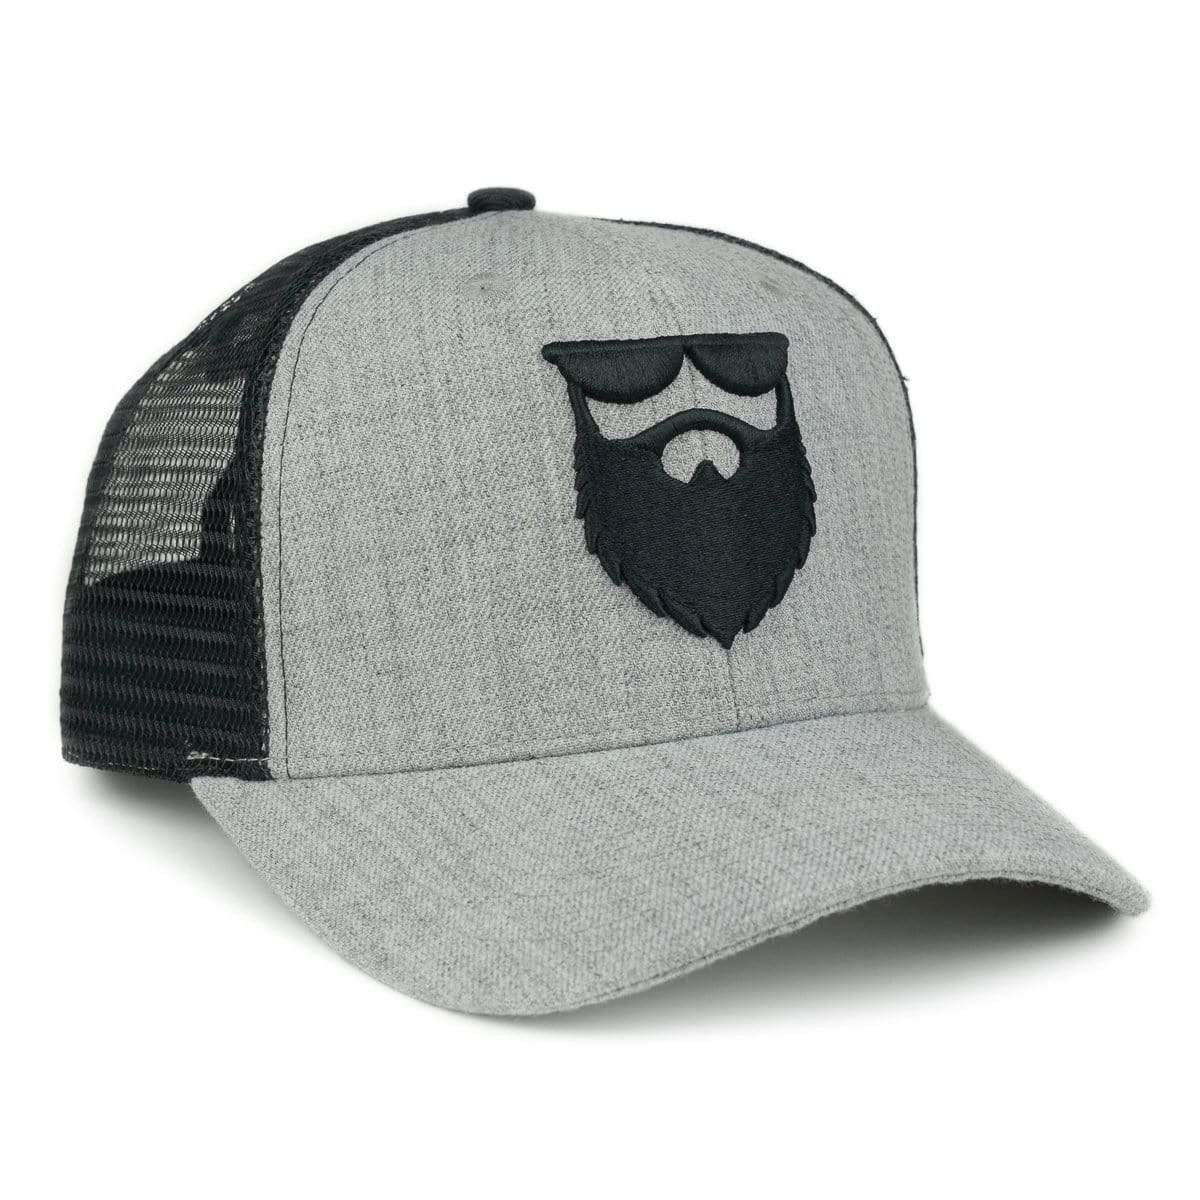 OG Beard Logo Mesh Trucker - Heather Grey/Black